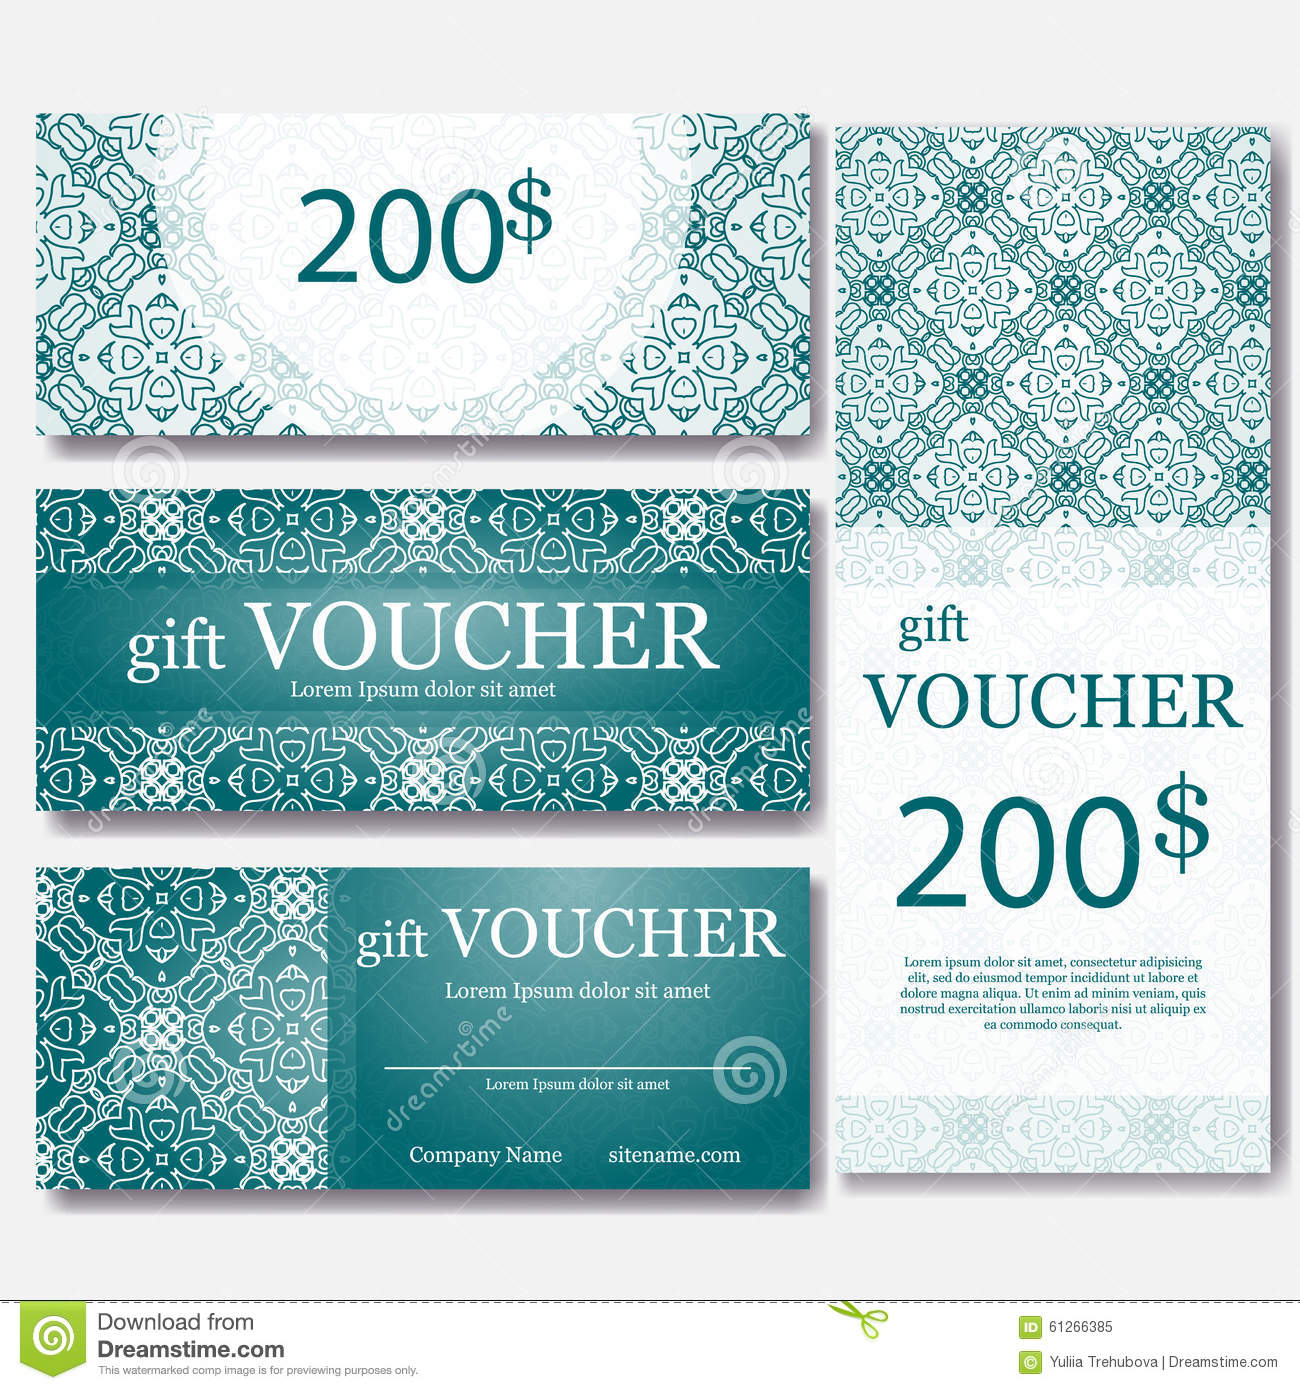 Gift Voucher Vector Vector Image 60046352 – Fun Voucher Template